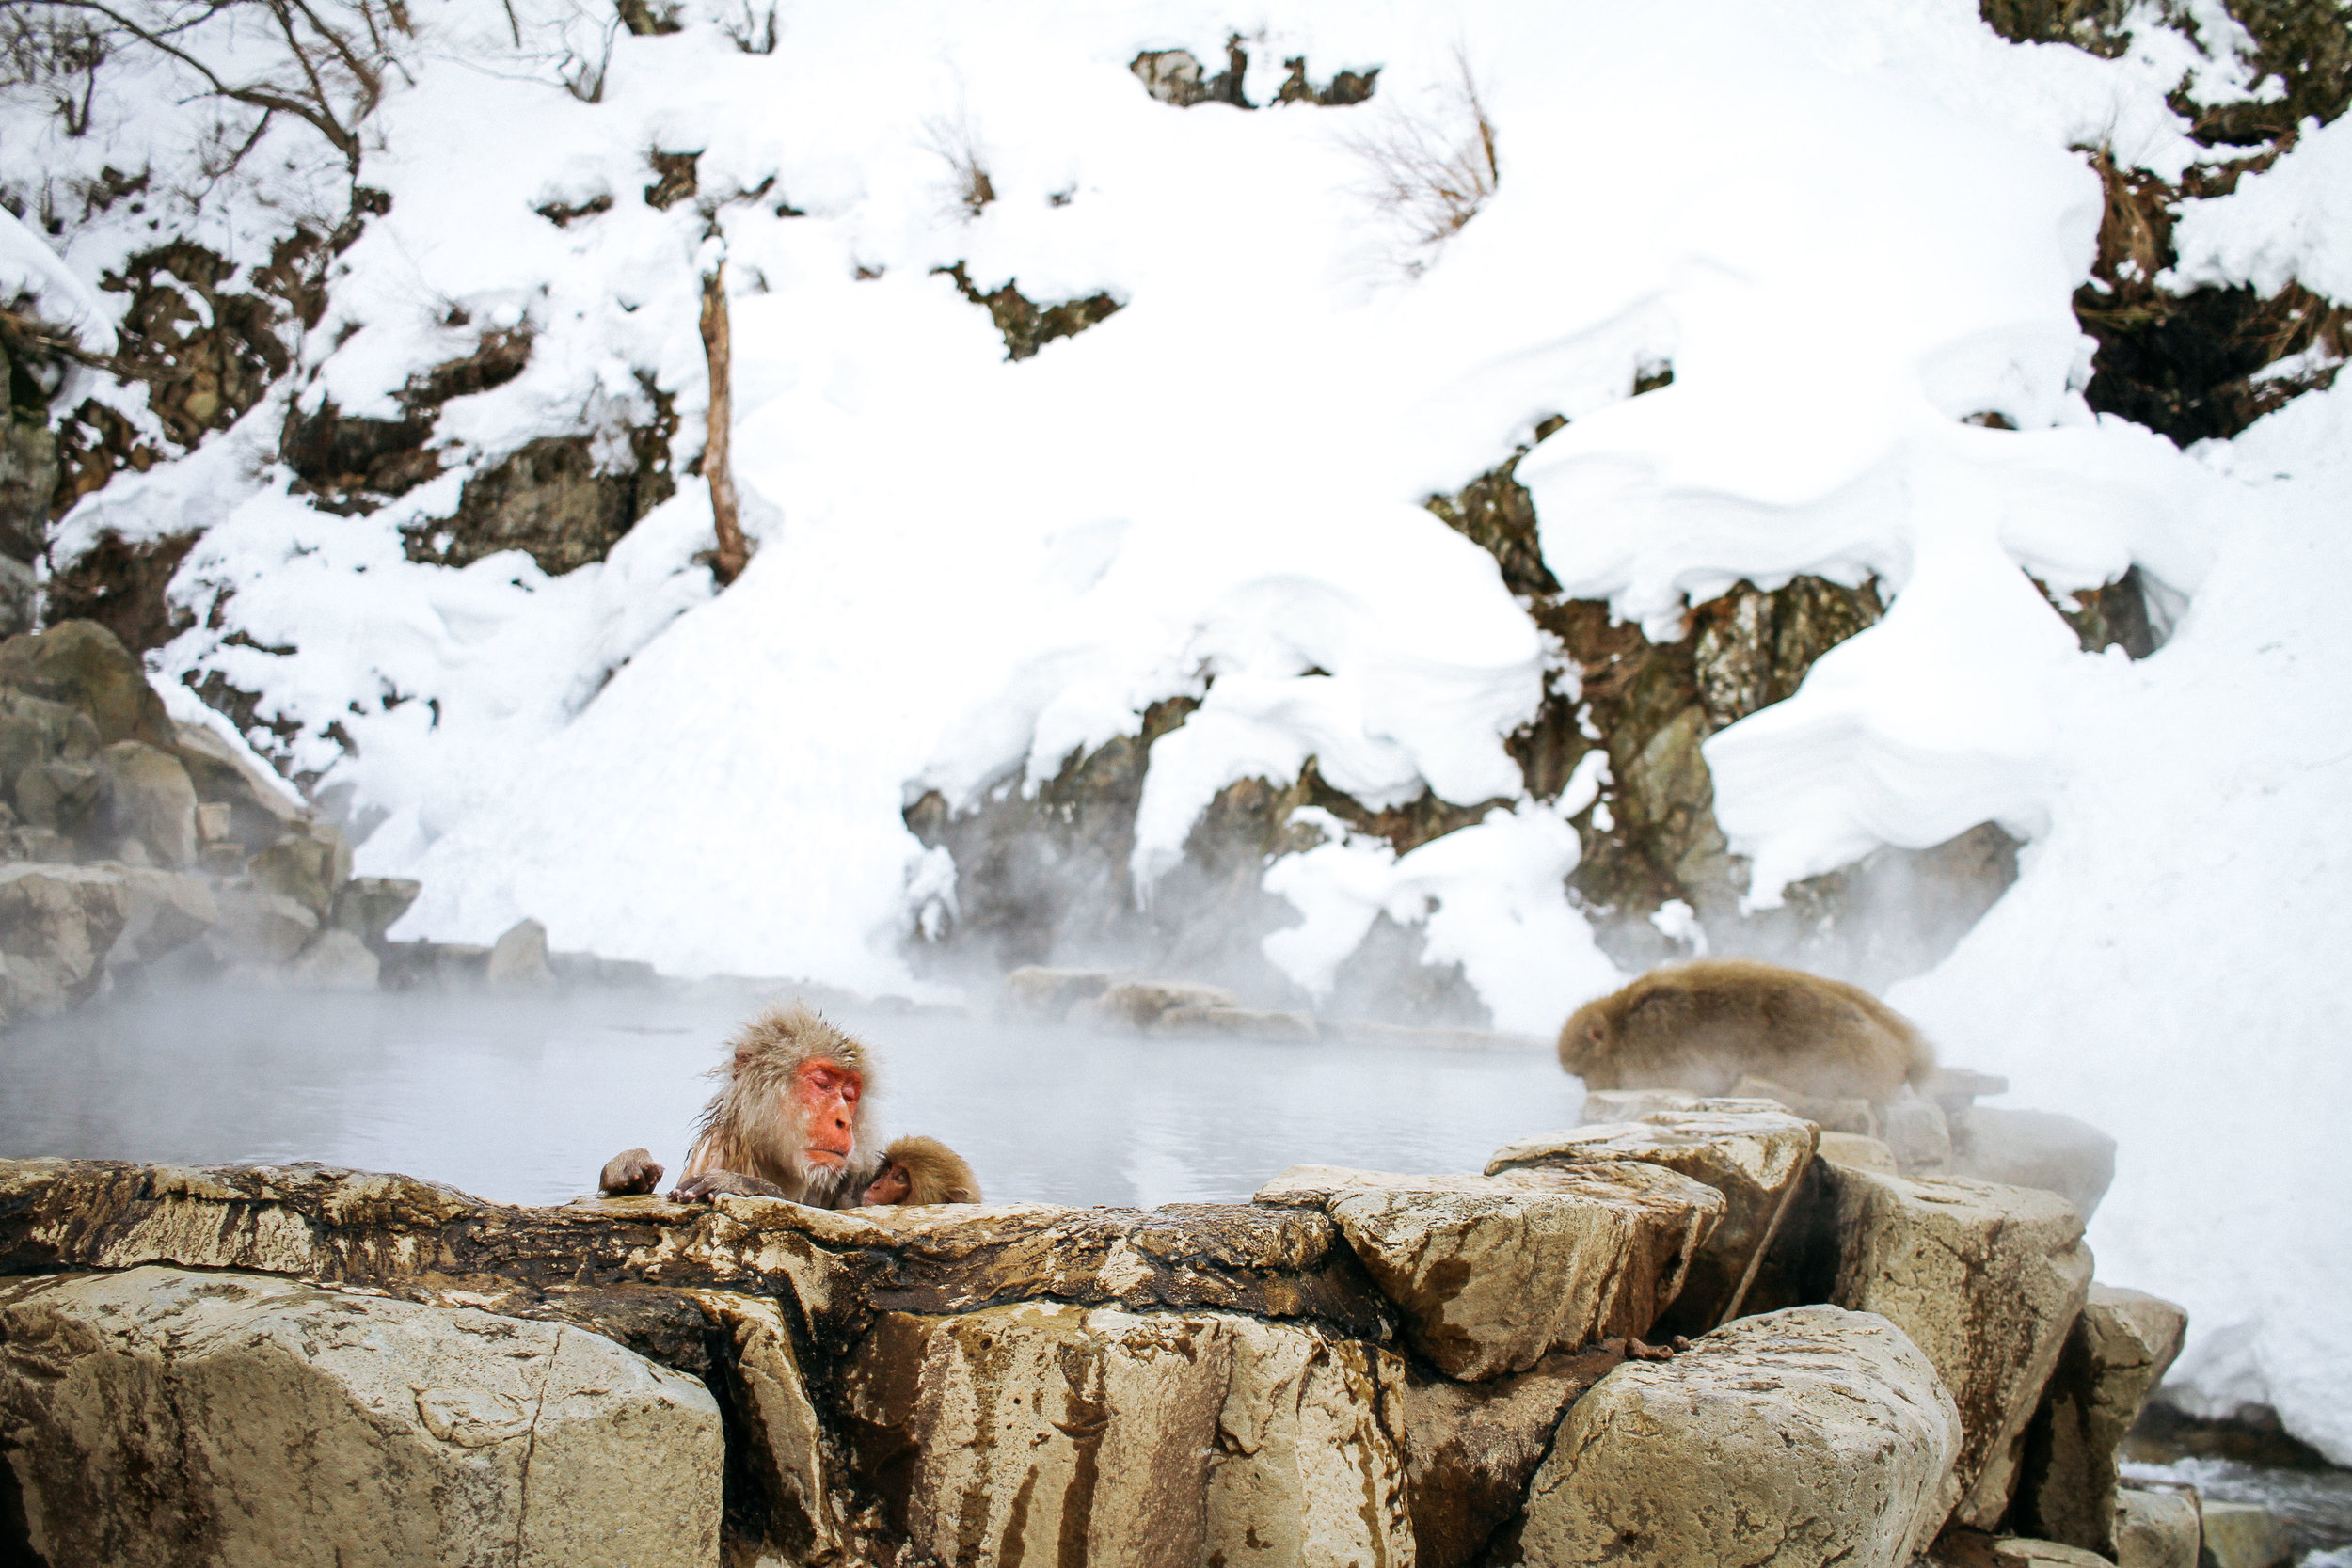 MAMA MONKEY  JIGOKUDANI, NAGANO An iconic place to visit is this monkey onsen in Nagano. I'm sure most of us have seen photos of it in national geographic or some travel website. Seeing it in person was a treat. Growing up in CA, I never got used to the snow, so throw some monkeys bathing in a bath into that frame and I was just in awe the whole time. It's almost as if the monkeys are Japanese themselves, adopting this lifestyle of public bathing with friends and family...haha.